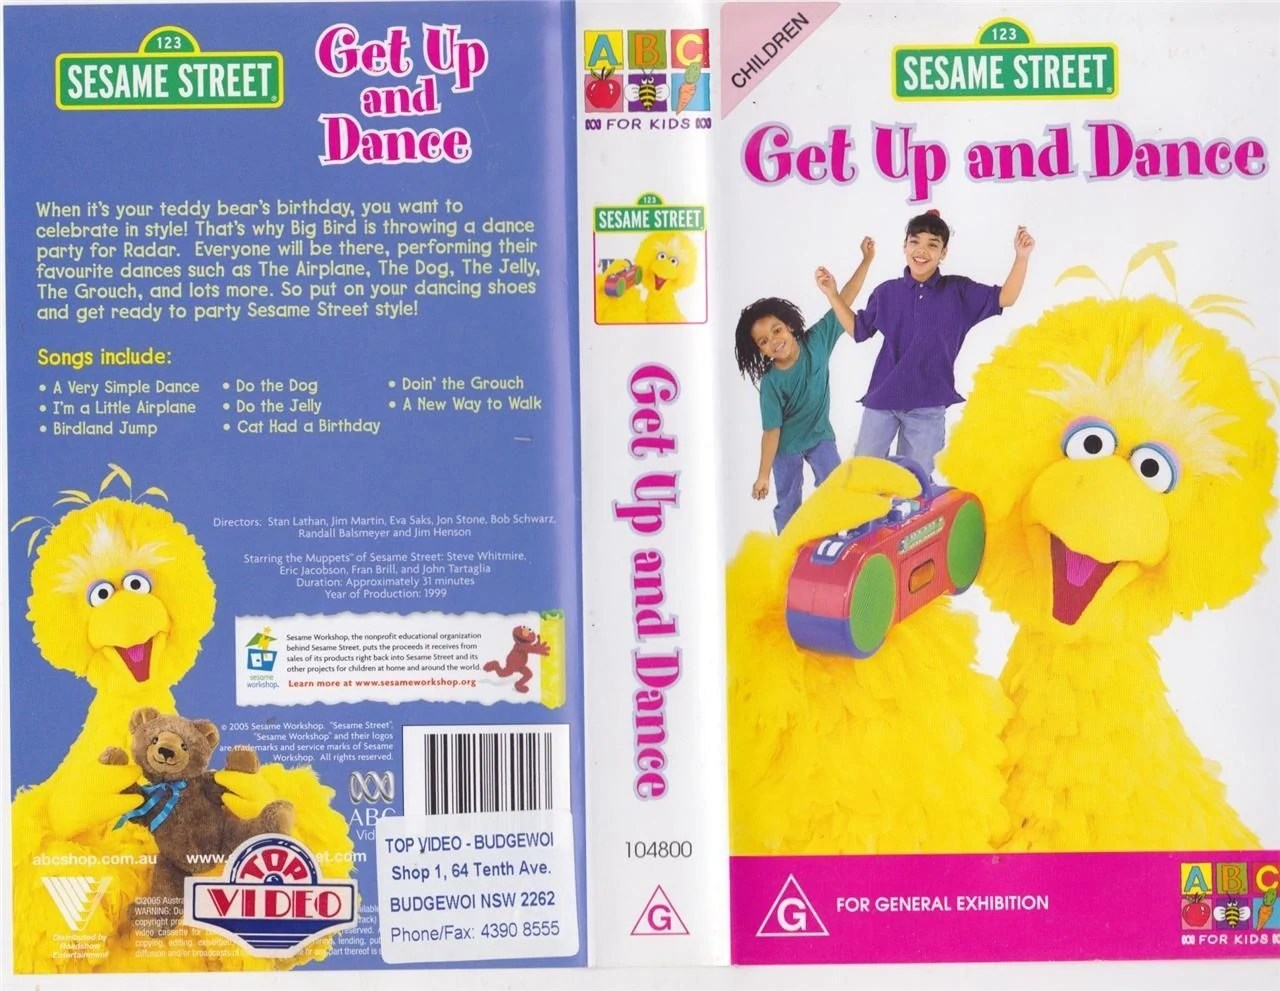 20+ Sesame Street Dvd Dance Pictures and Ideas on Weric